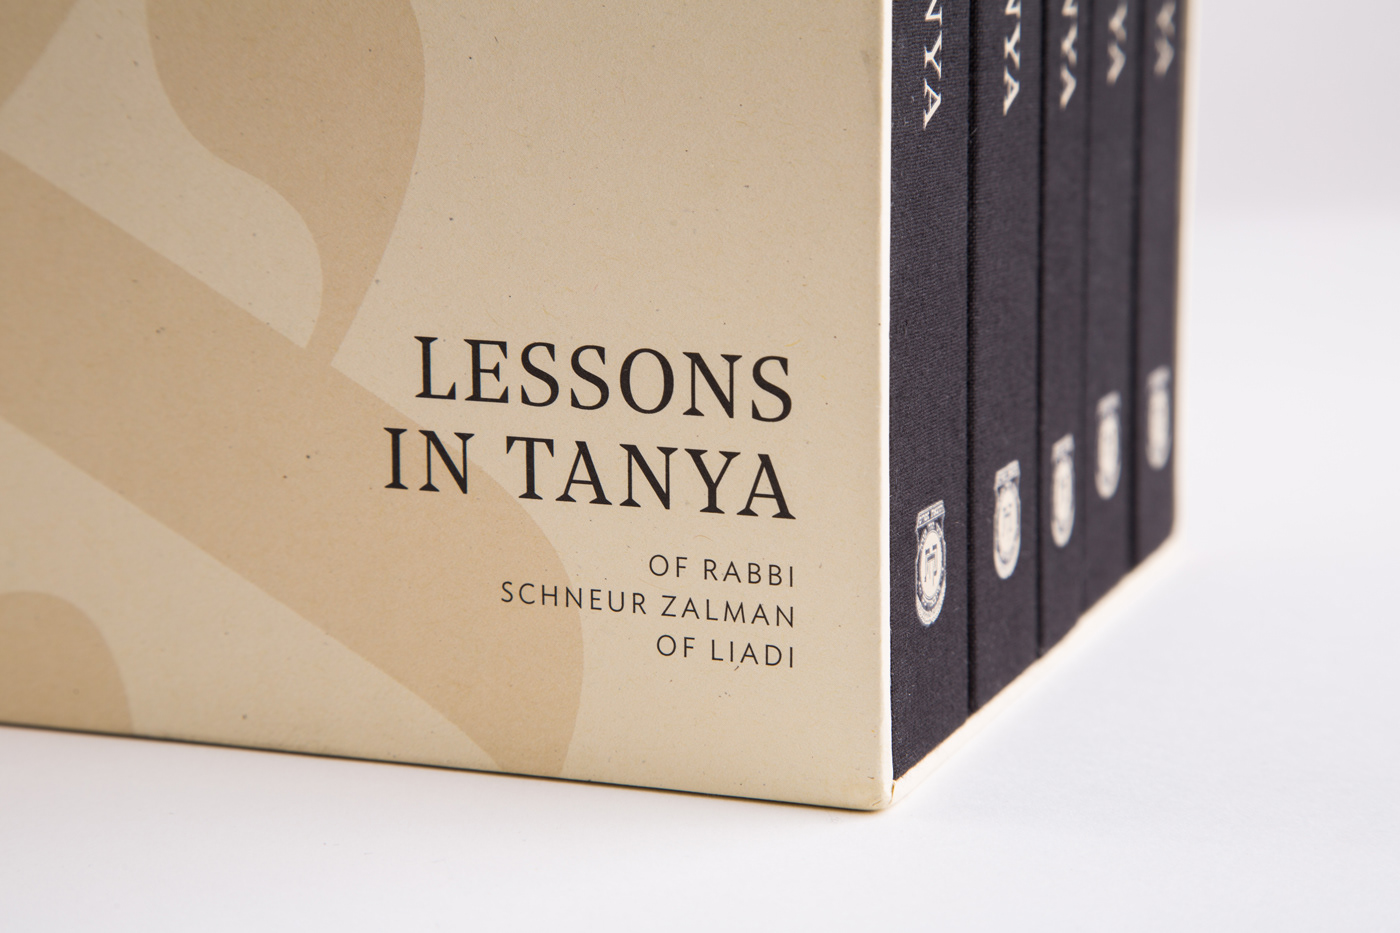 Lessons in Tanya